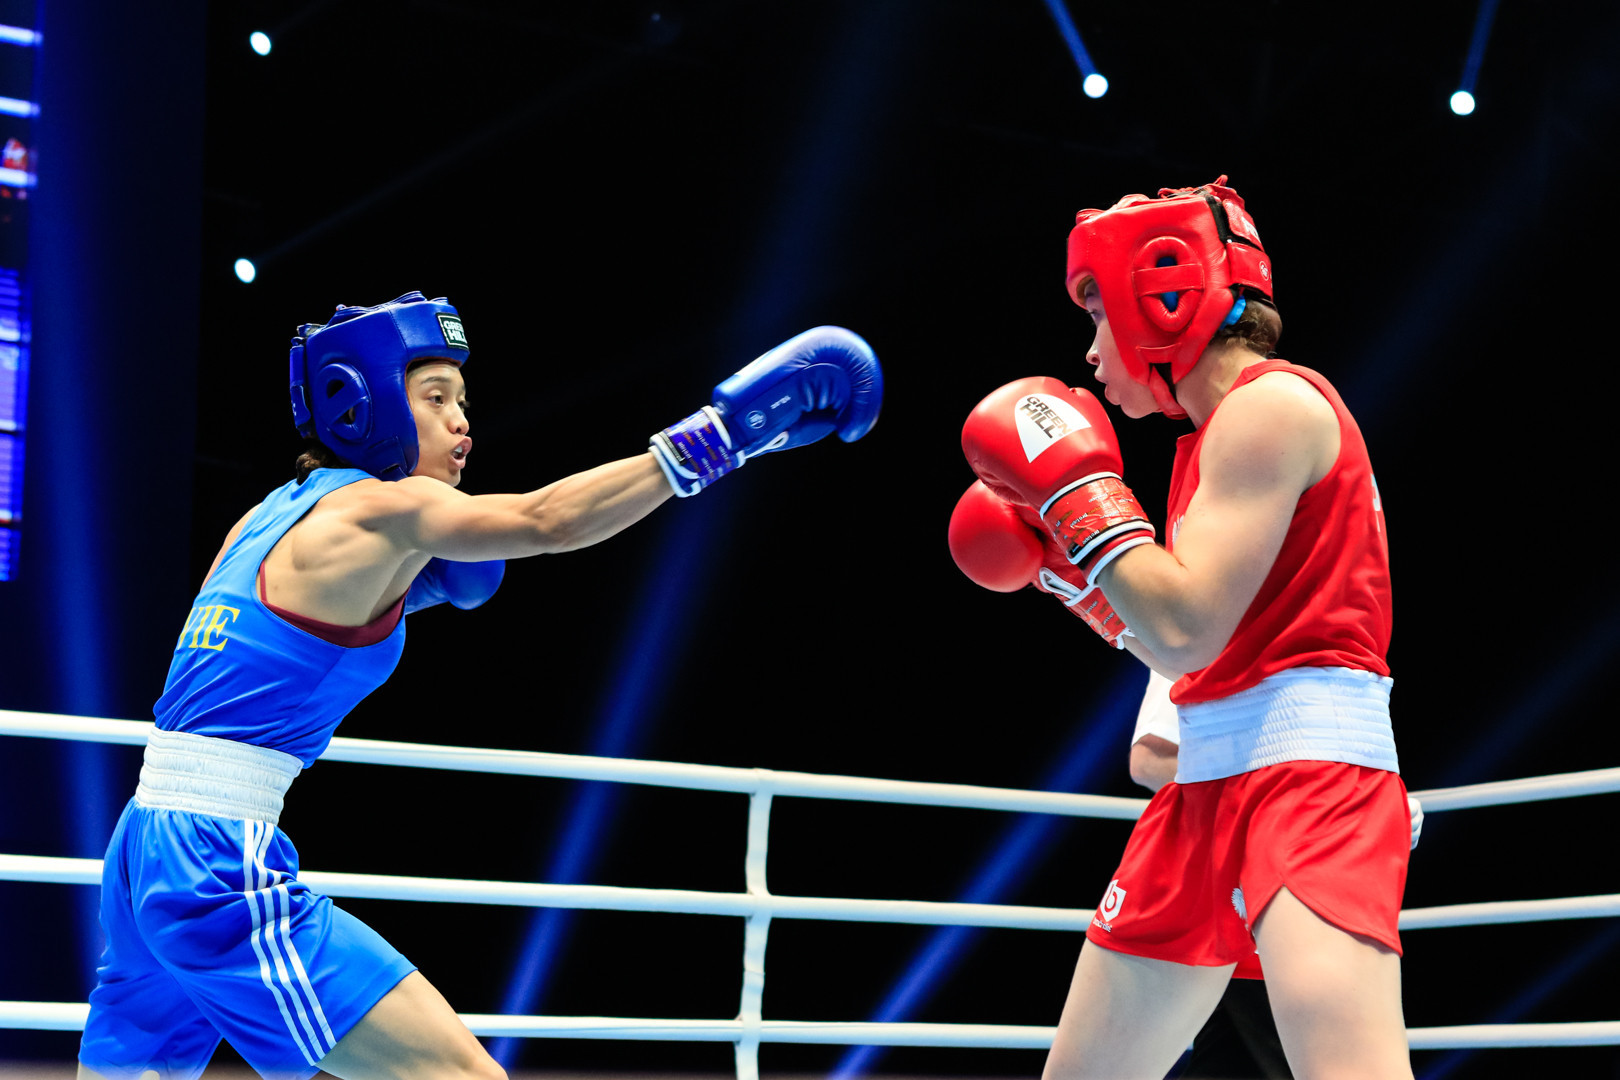 insidethegames is reporting LIVE from the AIBA Women's World Championships in Ulan-Ude